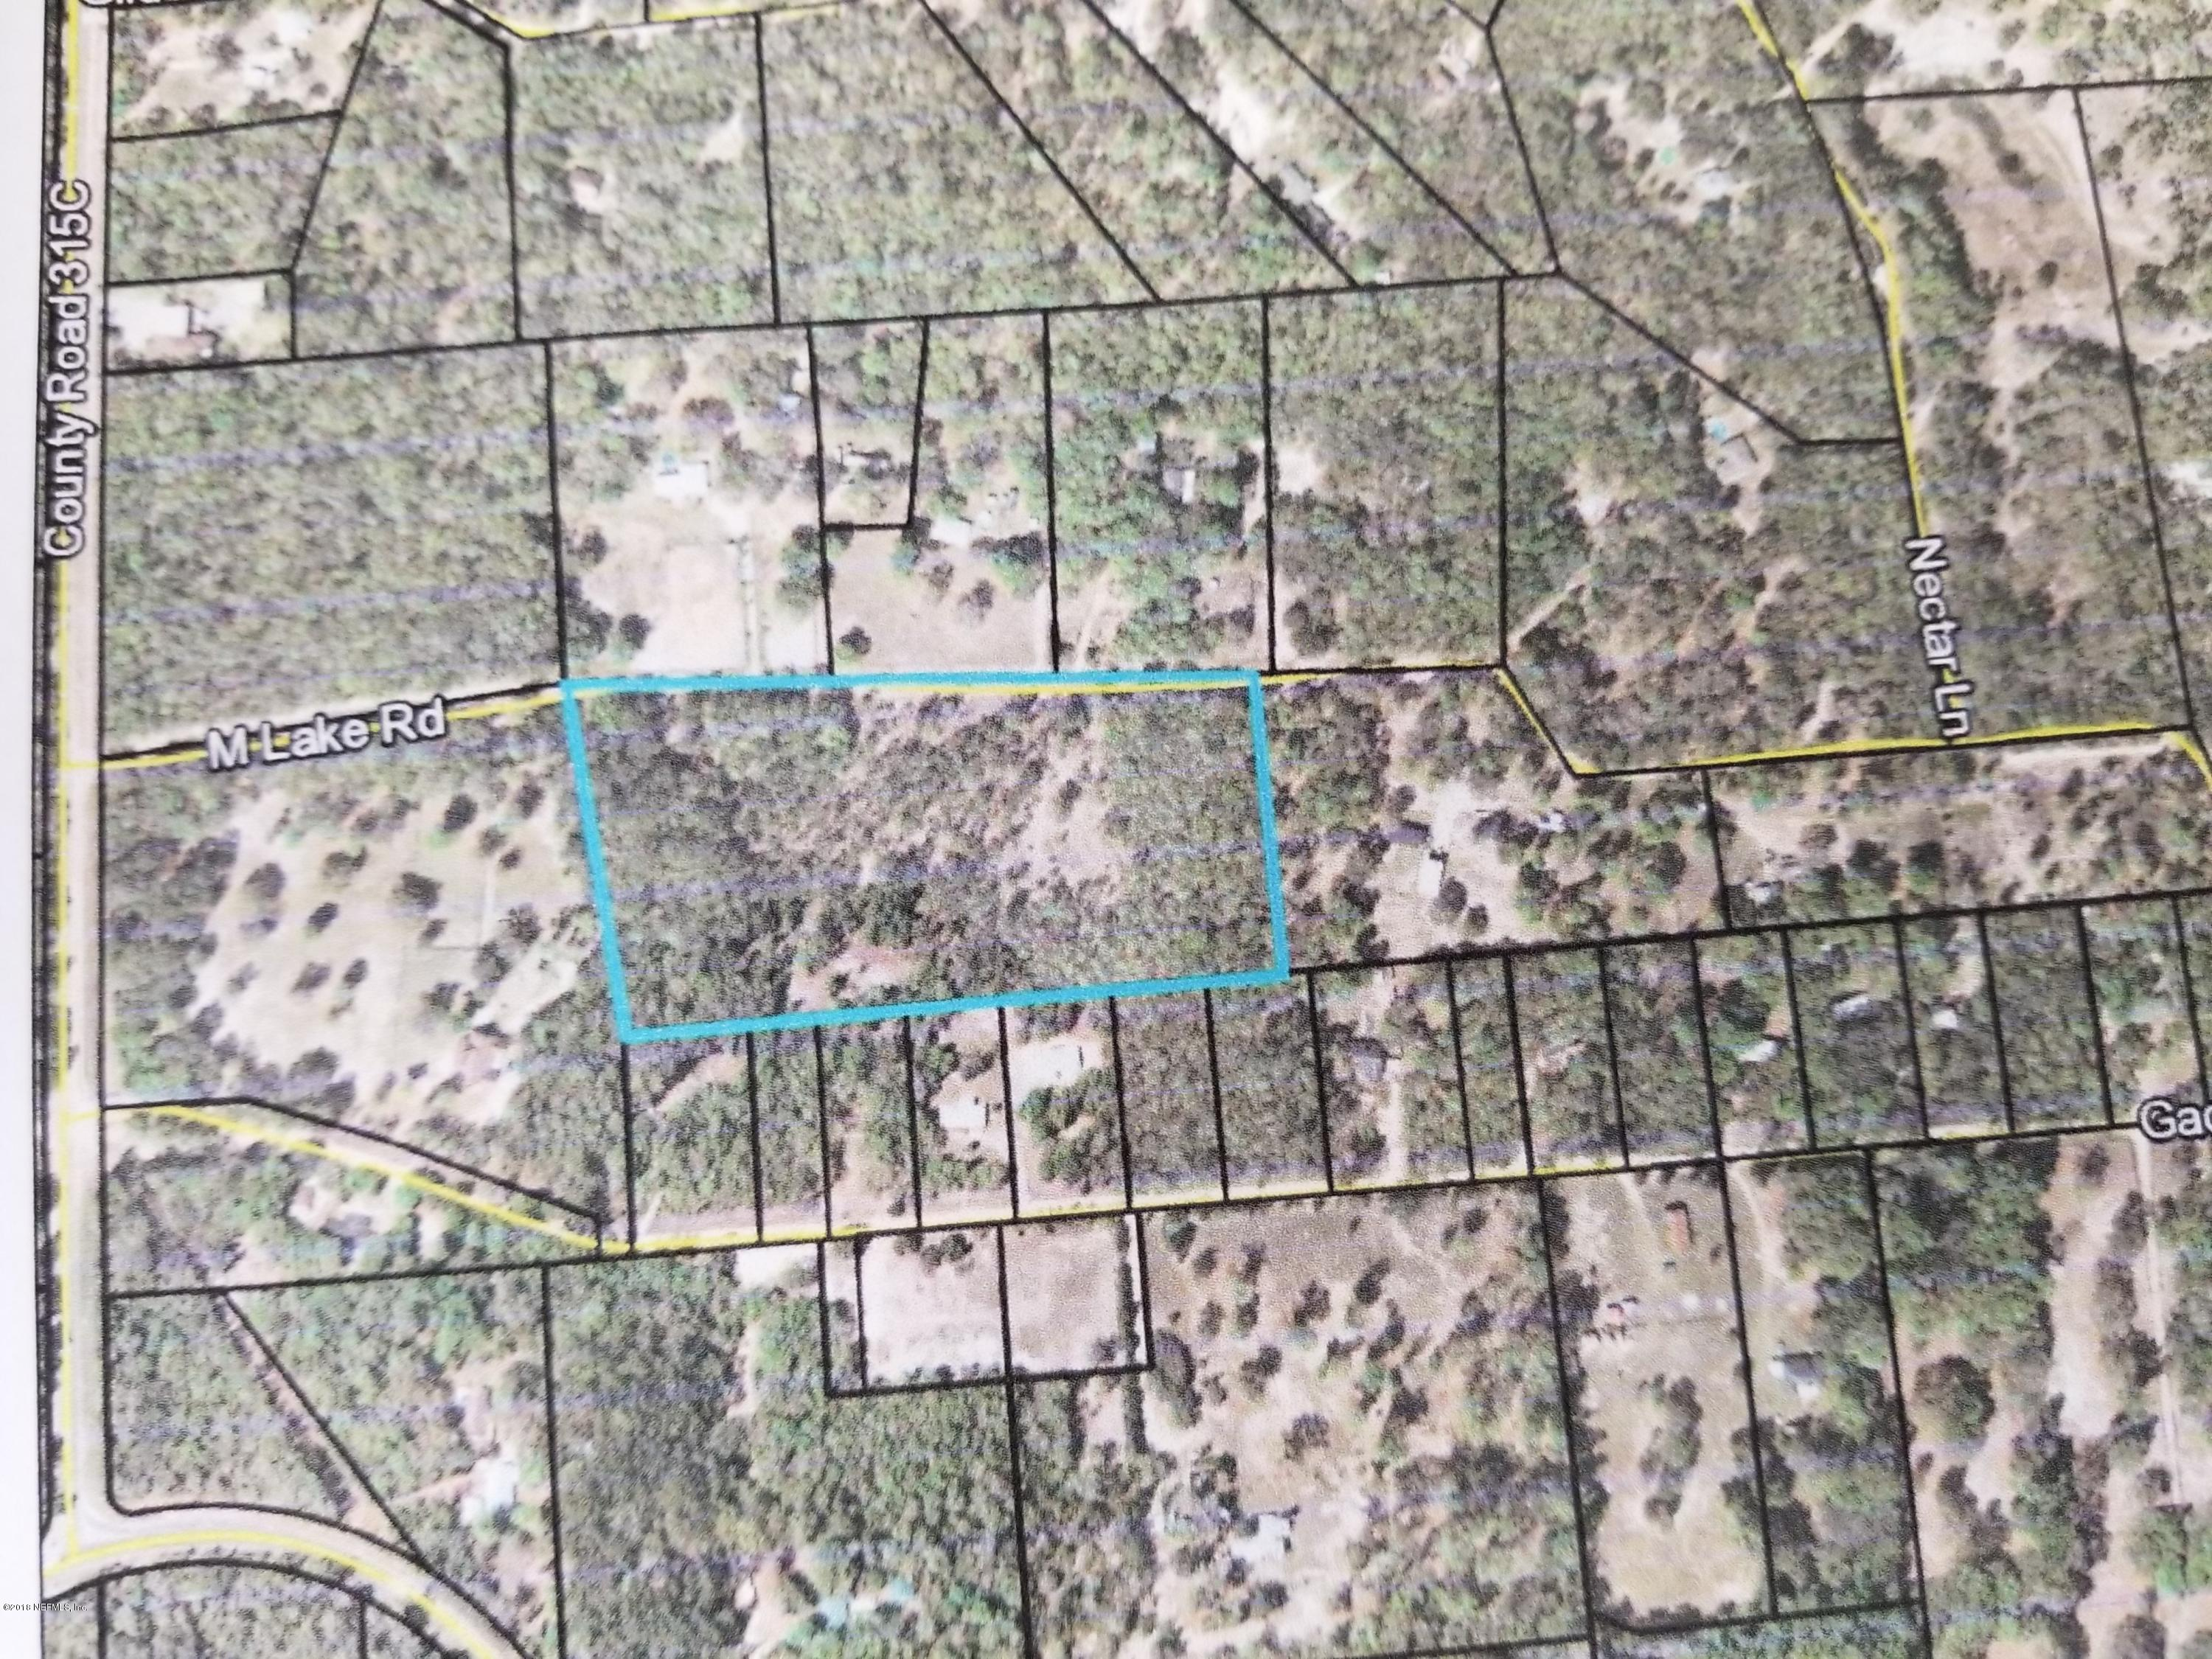 0000 M LAKE ROAD, KEYSTONE HEIGHTS, FLORIDA 32656, ,Vacant land,For sale,M LAKE ROAD,970427